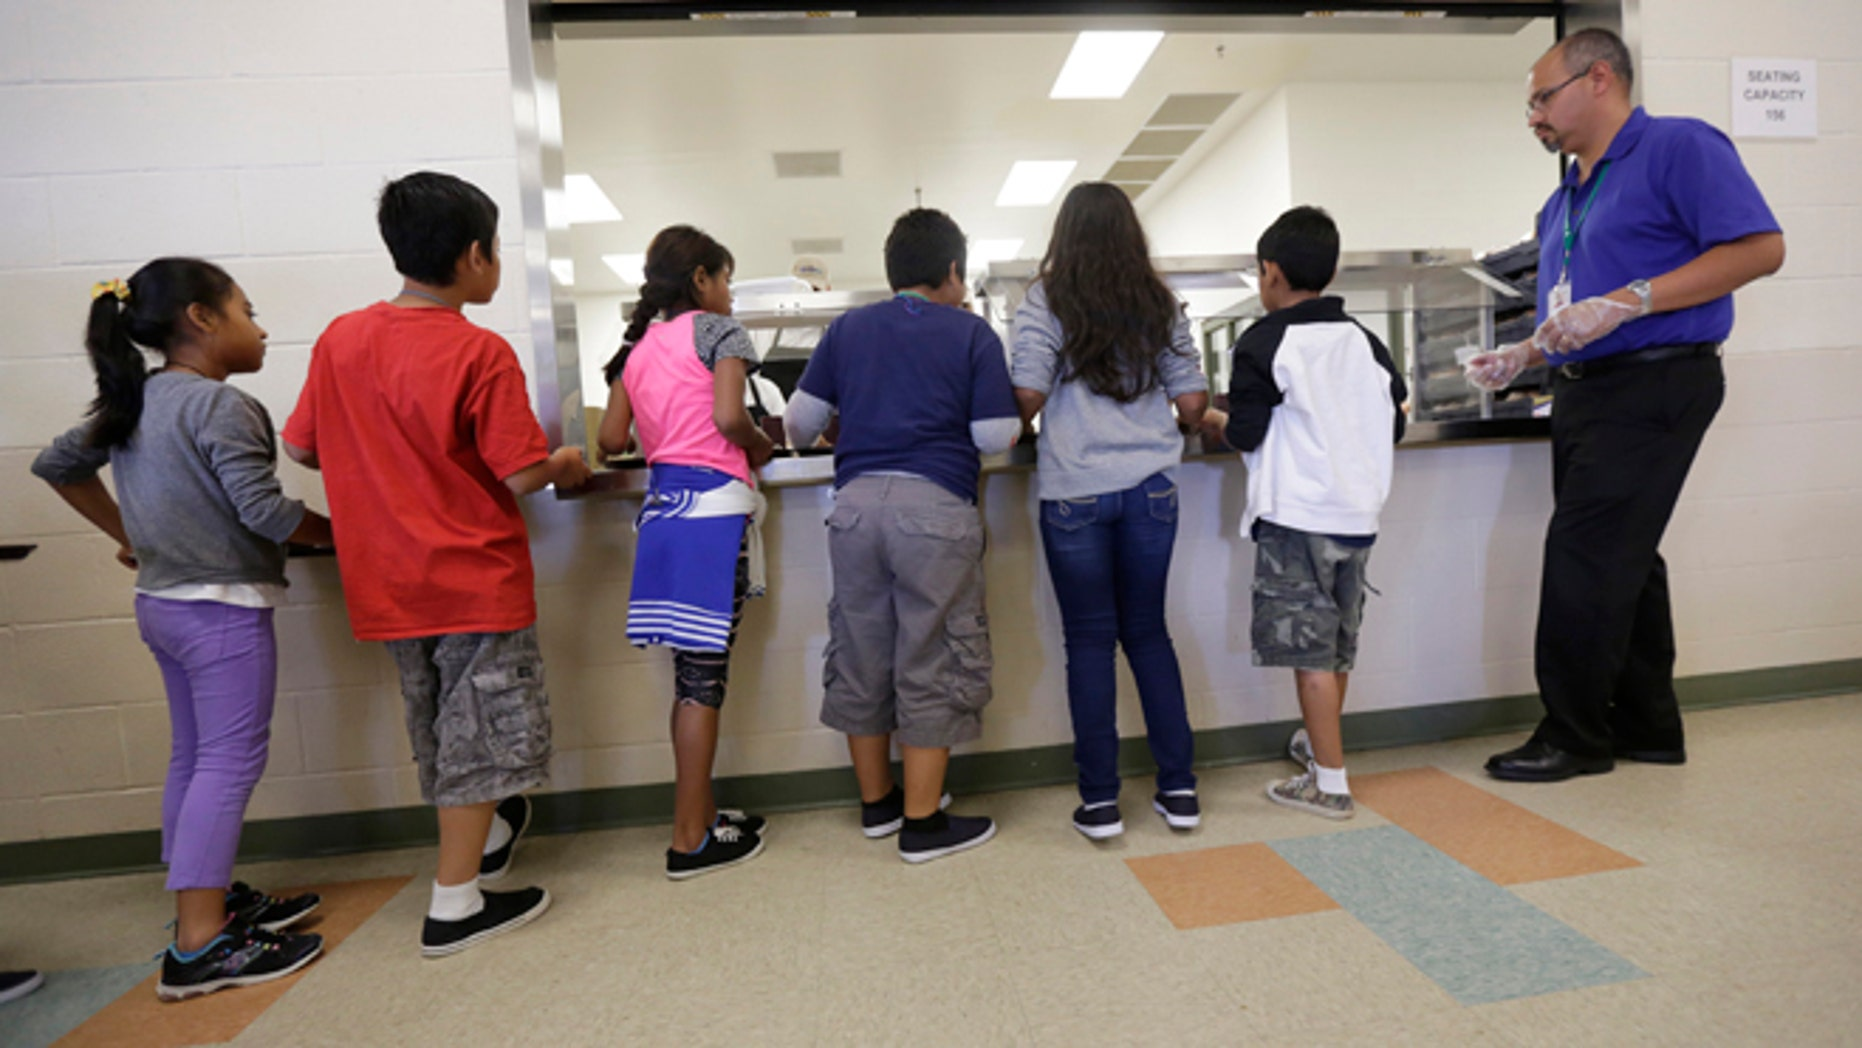 Detained immigrant children line up in the cafeteria at the Karnes County Residential Center, in Karnes City, Texas.